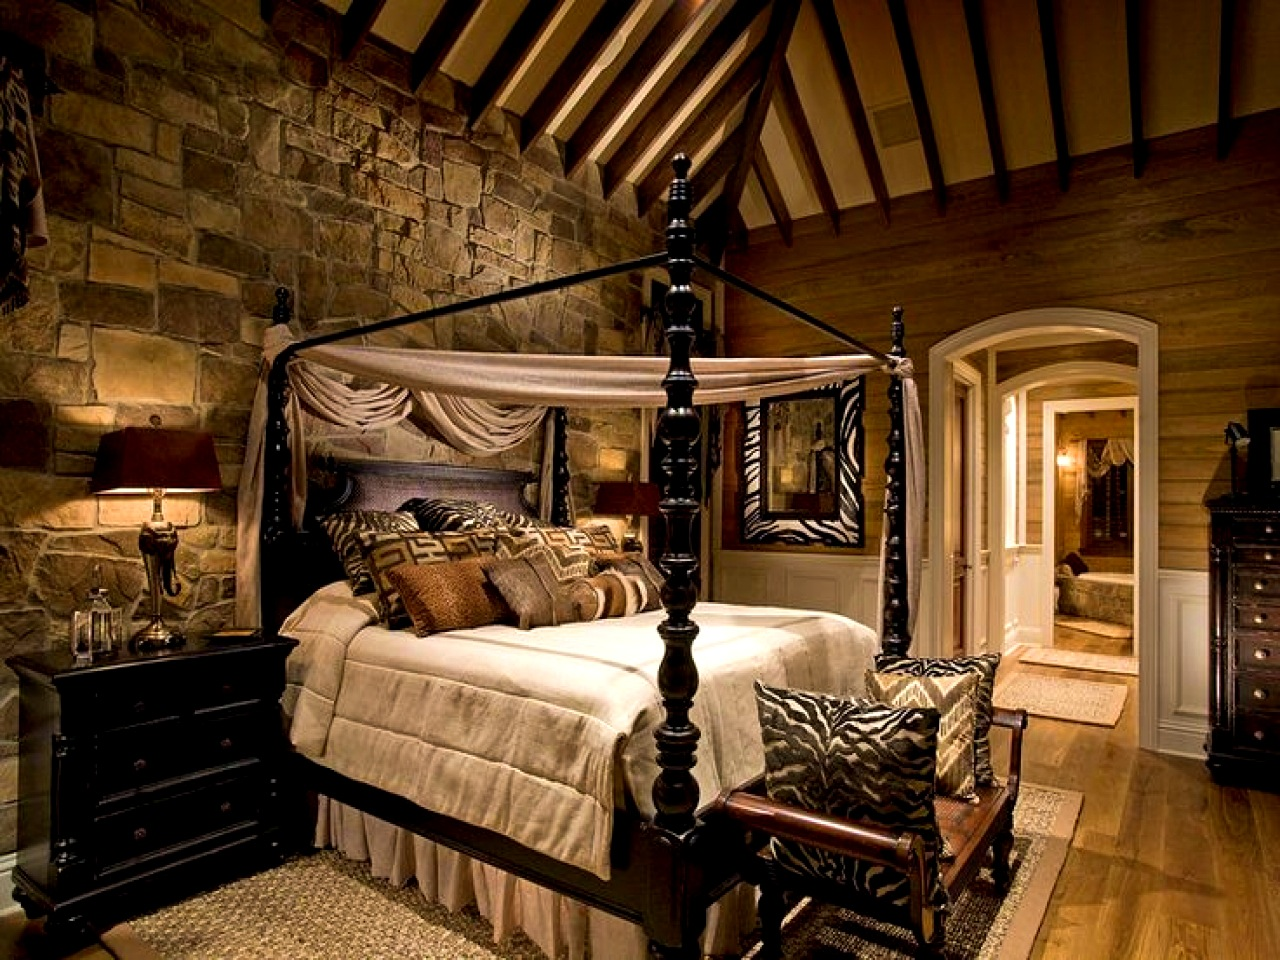 Bedroom Photos Decorating Ideas Rustic Bedroom Decorating Ideas A Guide To Inspire And